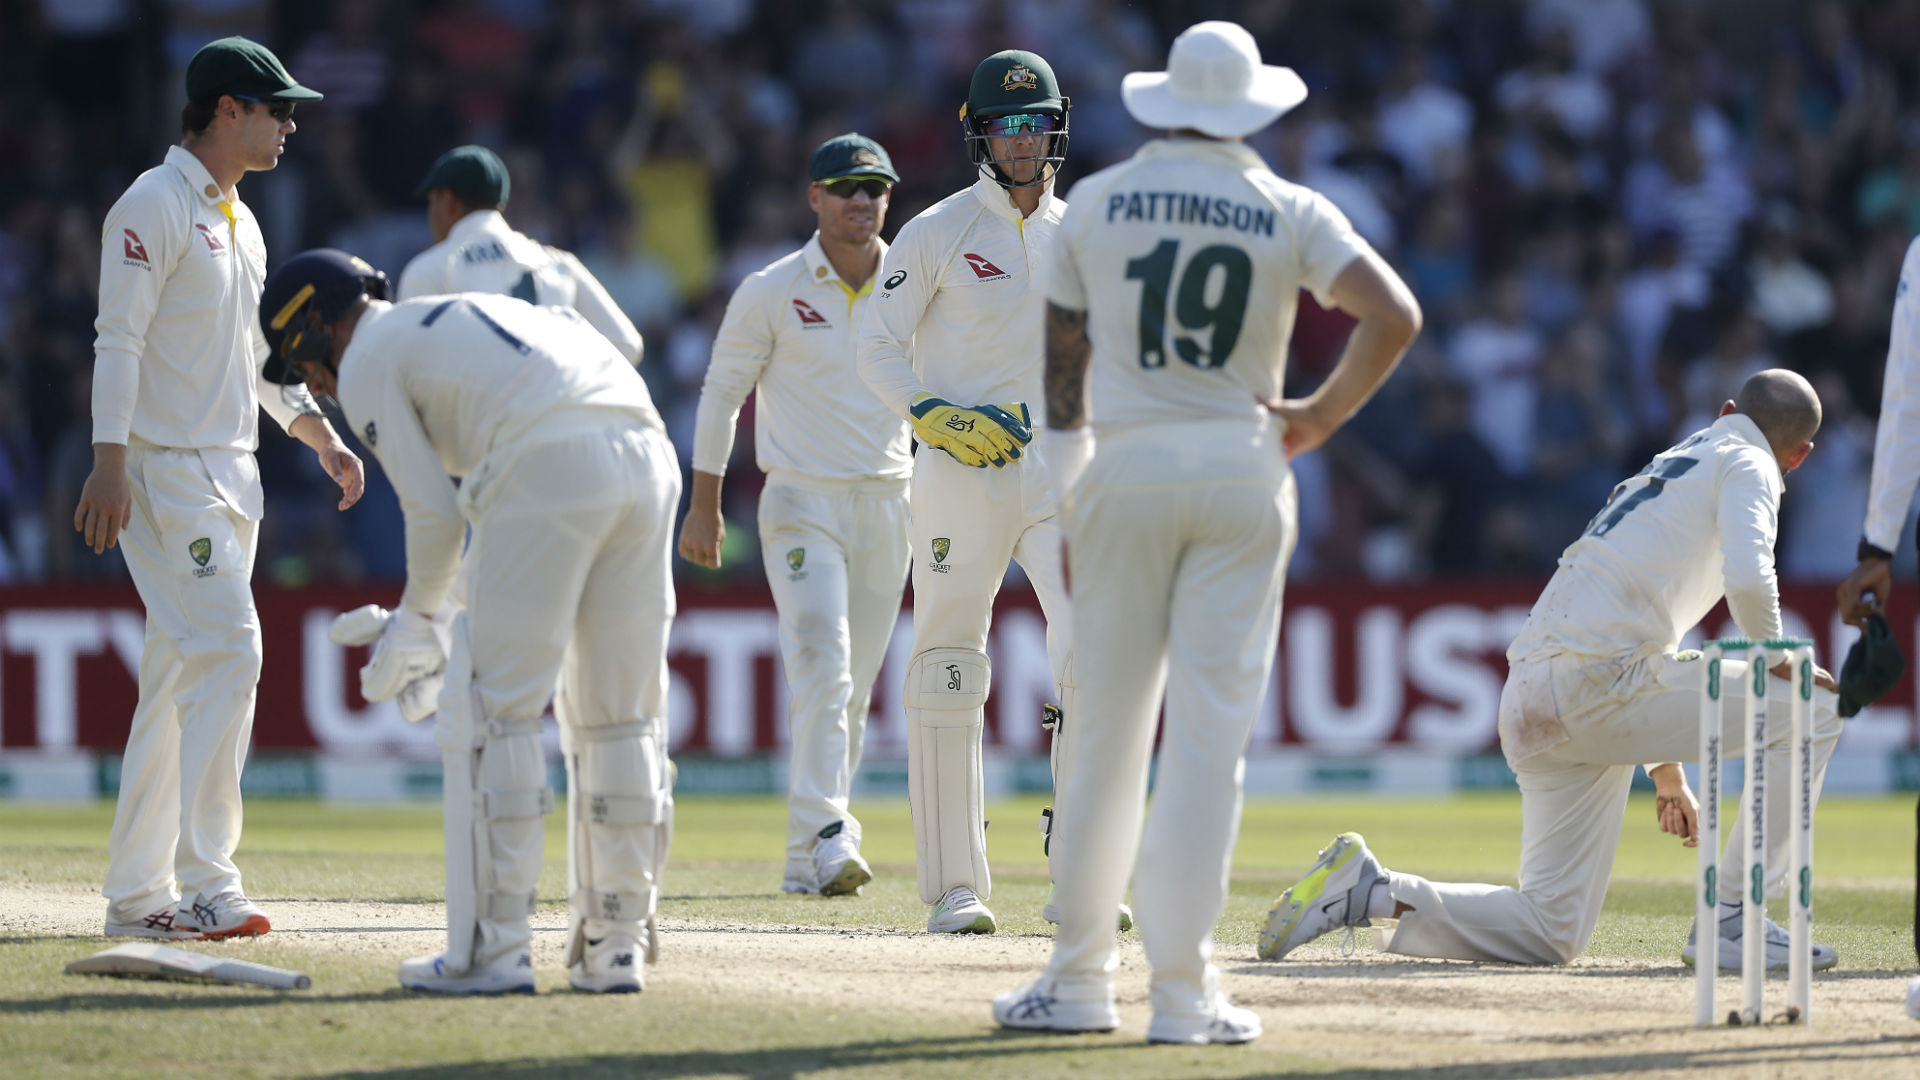 Ashes 2019: Paine has 'no issue' with umpire Wilson after Stokes survives to clinch Test